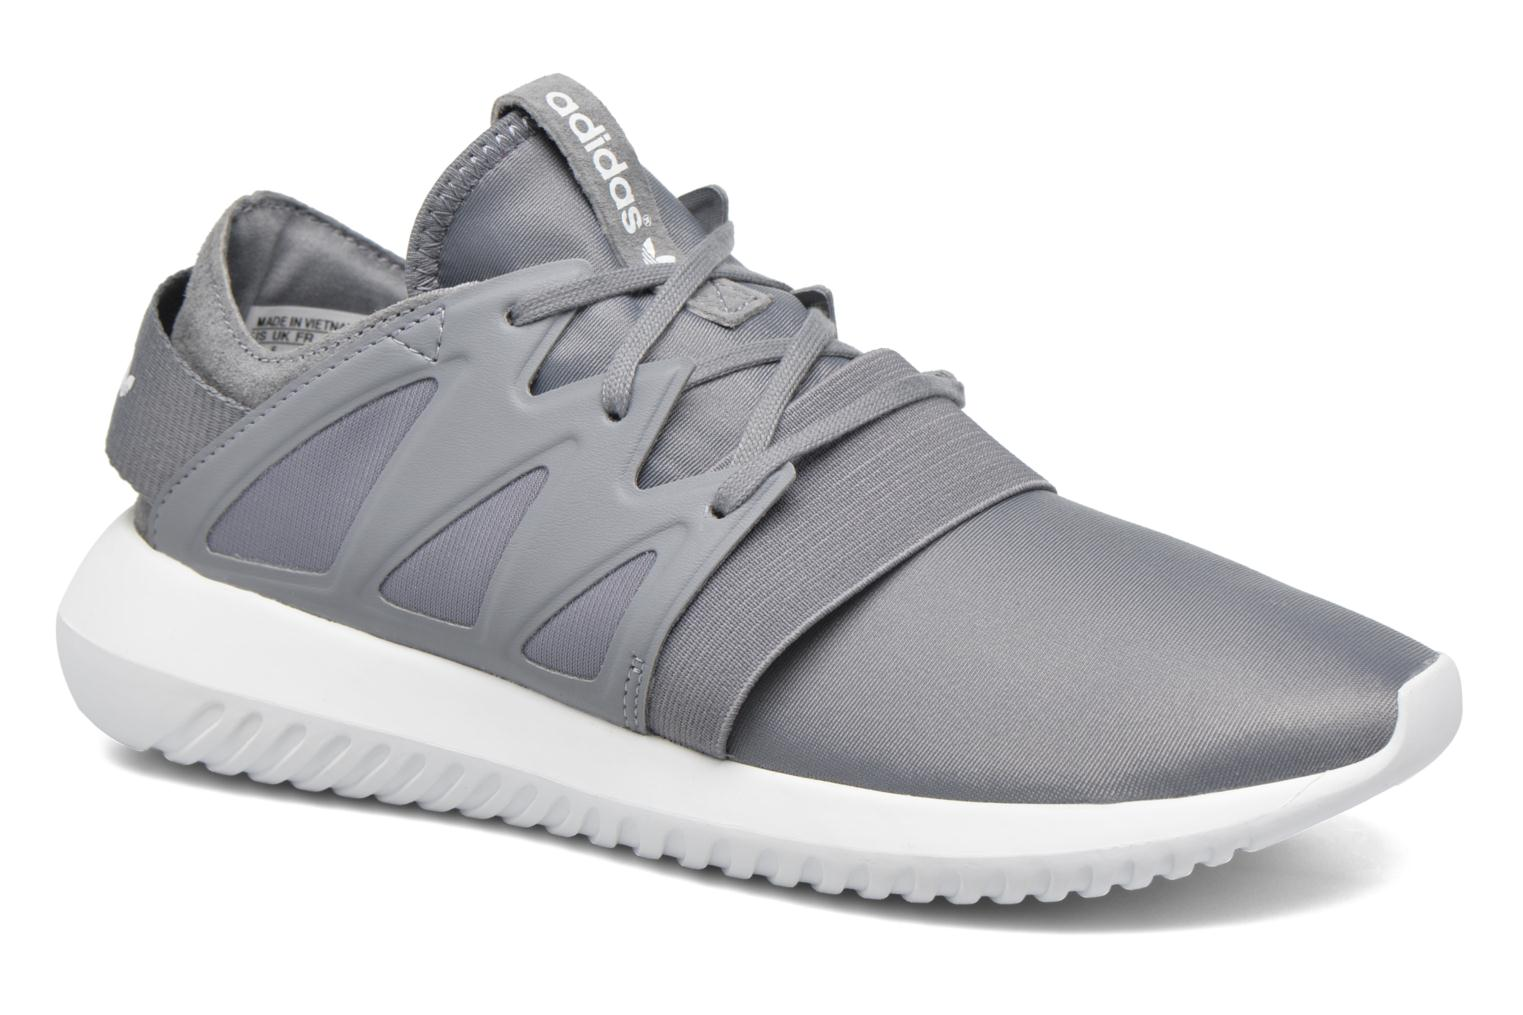 Baskets Adidas Originals Tubular Viral W Gris vue détail/paire